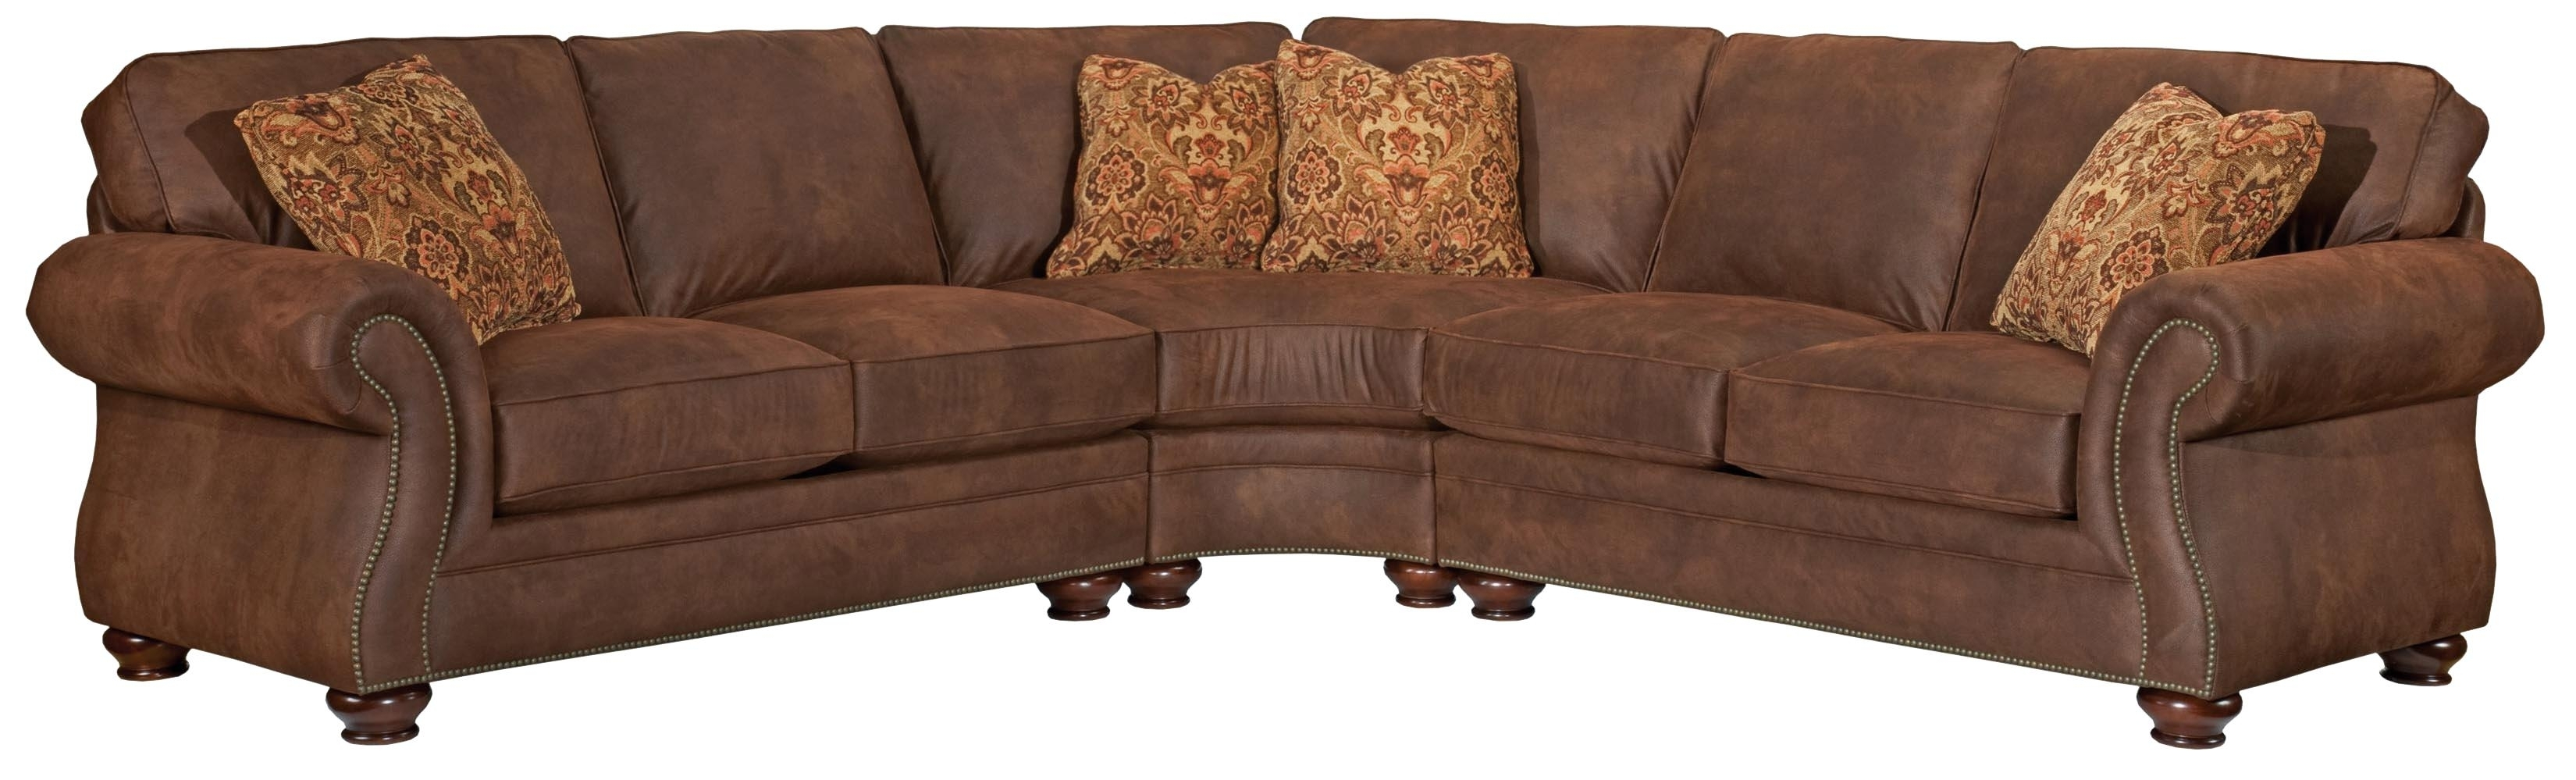 10 top sectional sofas at broyhill sofa ideas top rated small sectional sofas top selling sectional sofas